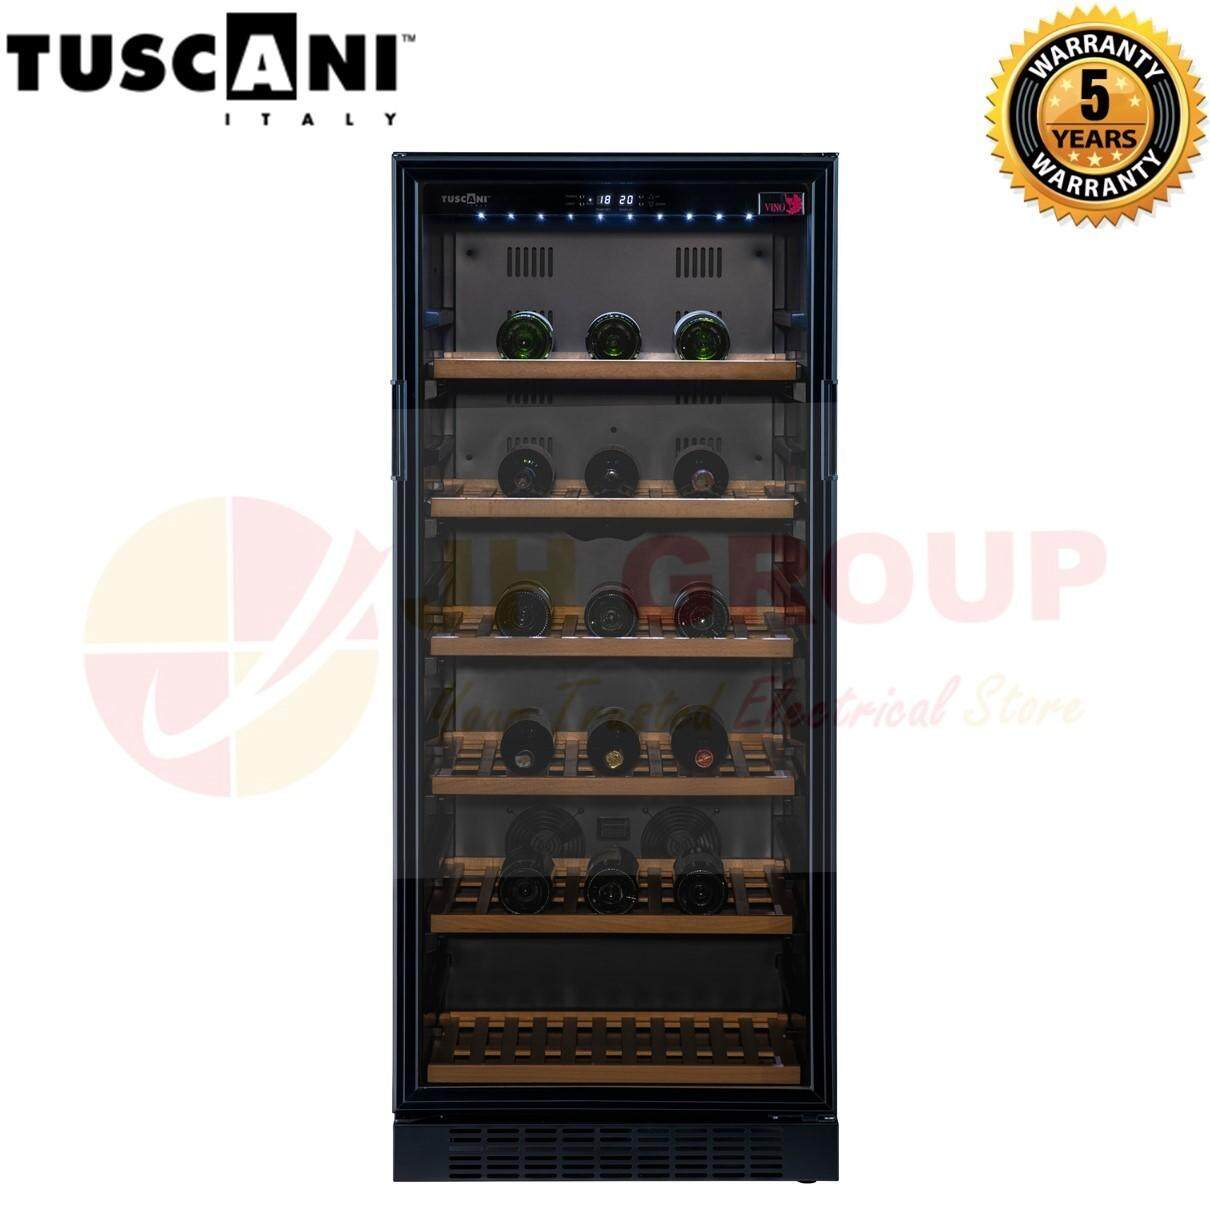 Tuscani Italy Tsc Bellona 110 321l Wine Cellar ( 111 Bottles ) Wine Chiller Wine Cooler Wine Cabinet Wine Fridge By Jh Ecommerce.